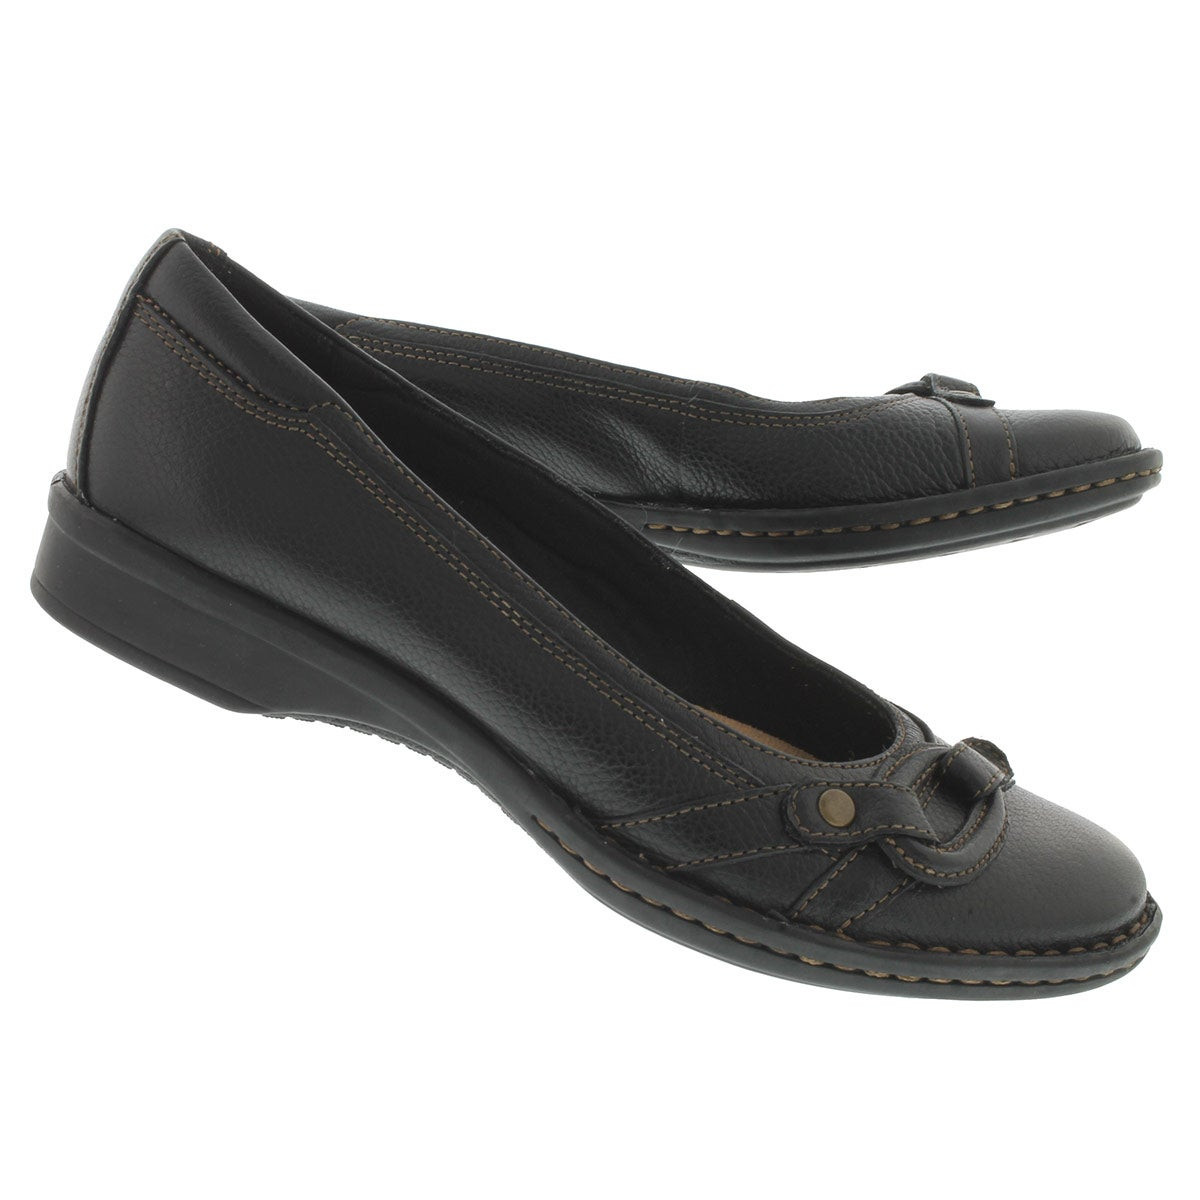 Lds Alley black dress flat